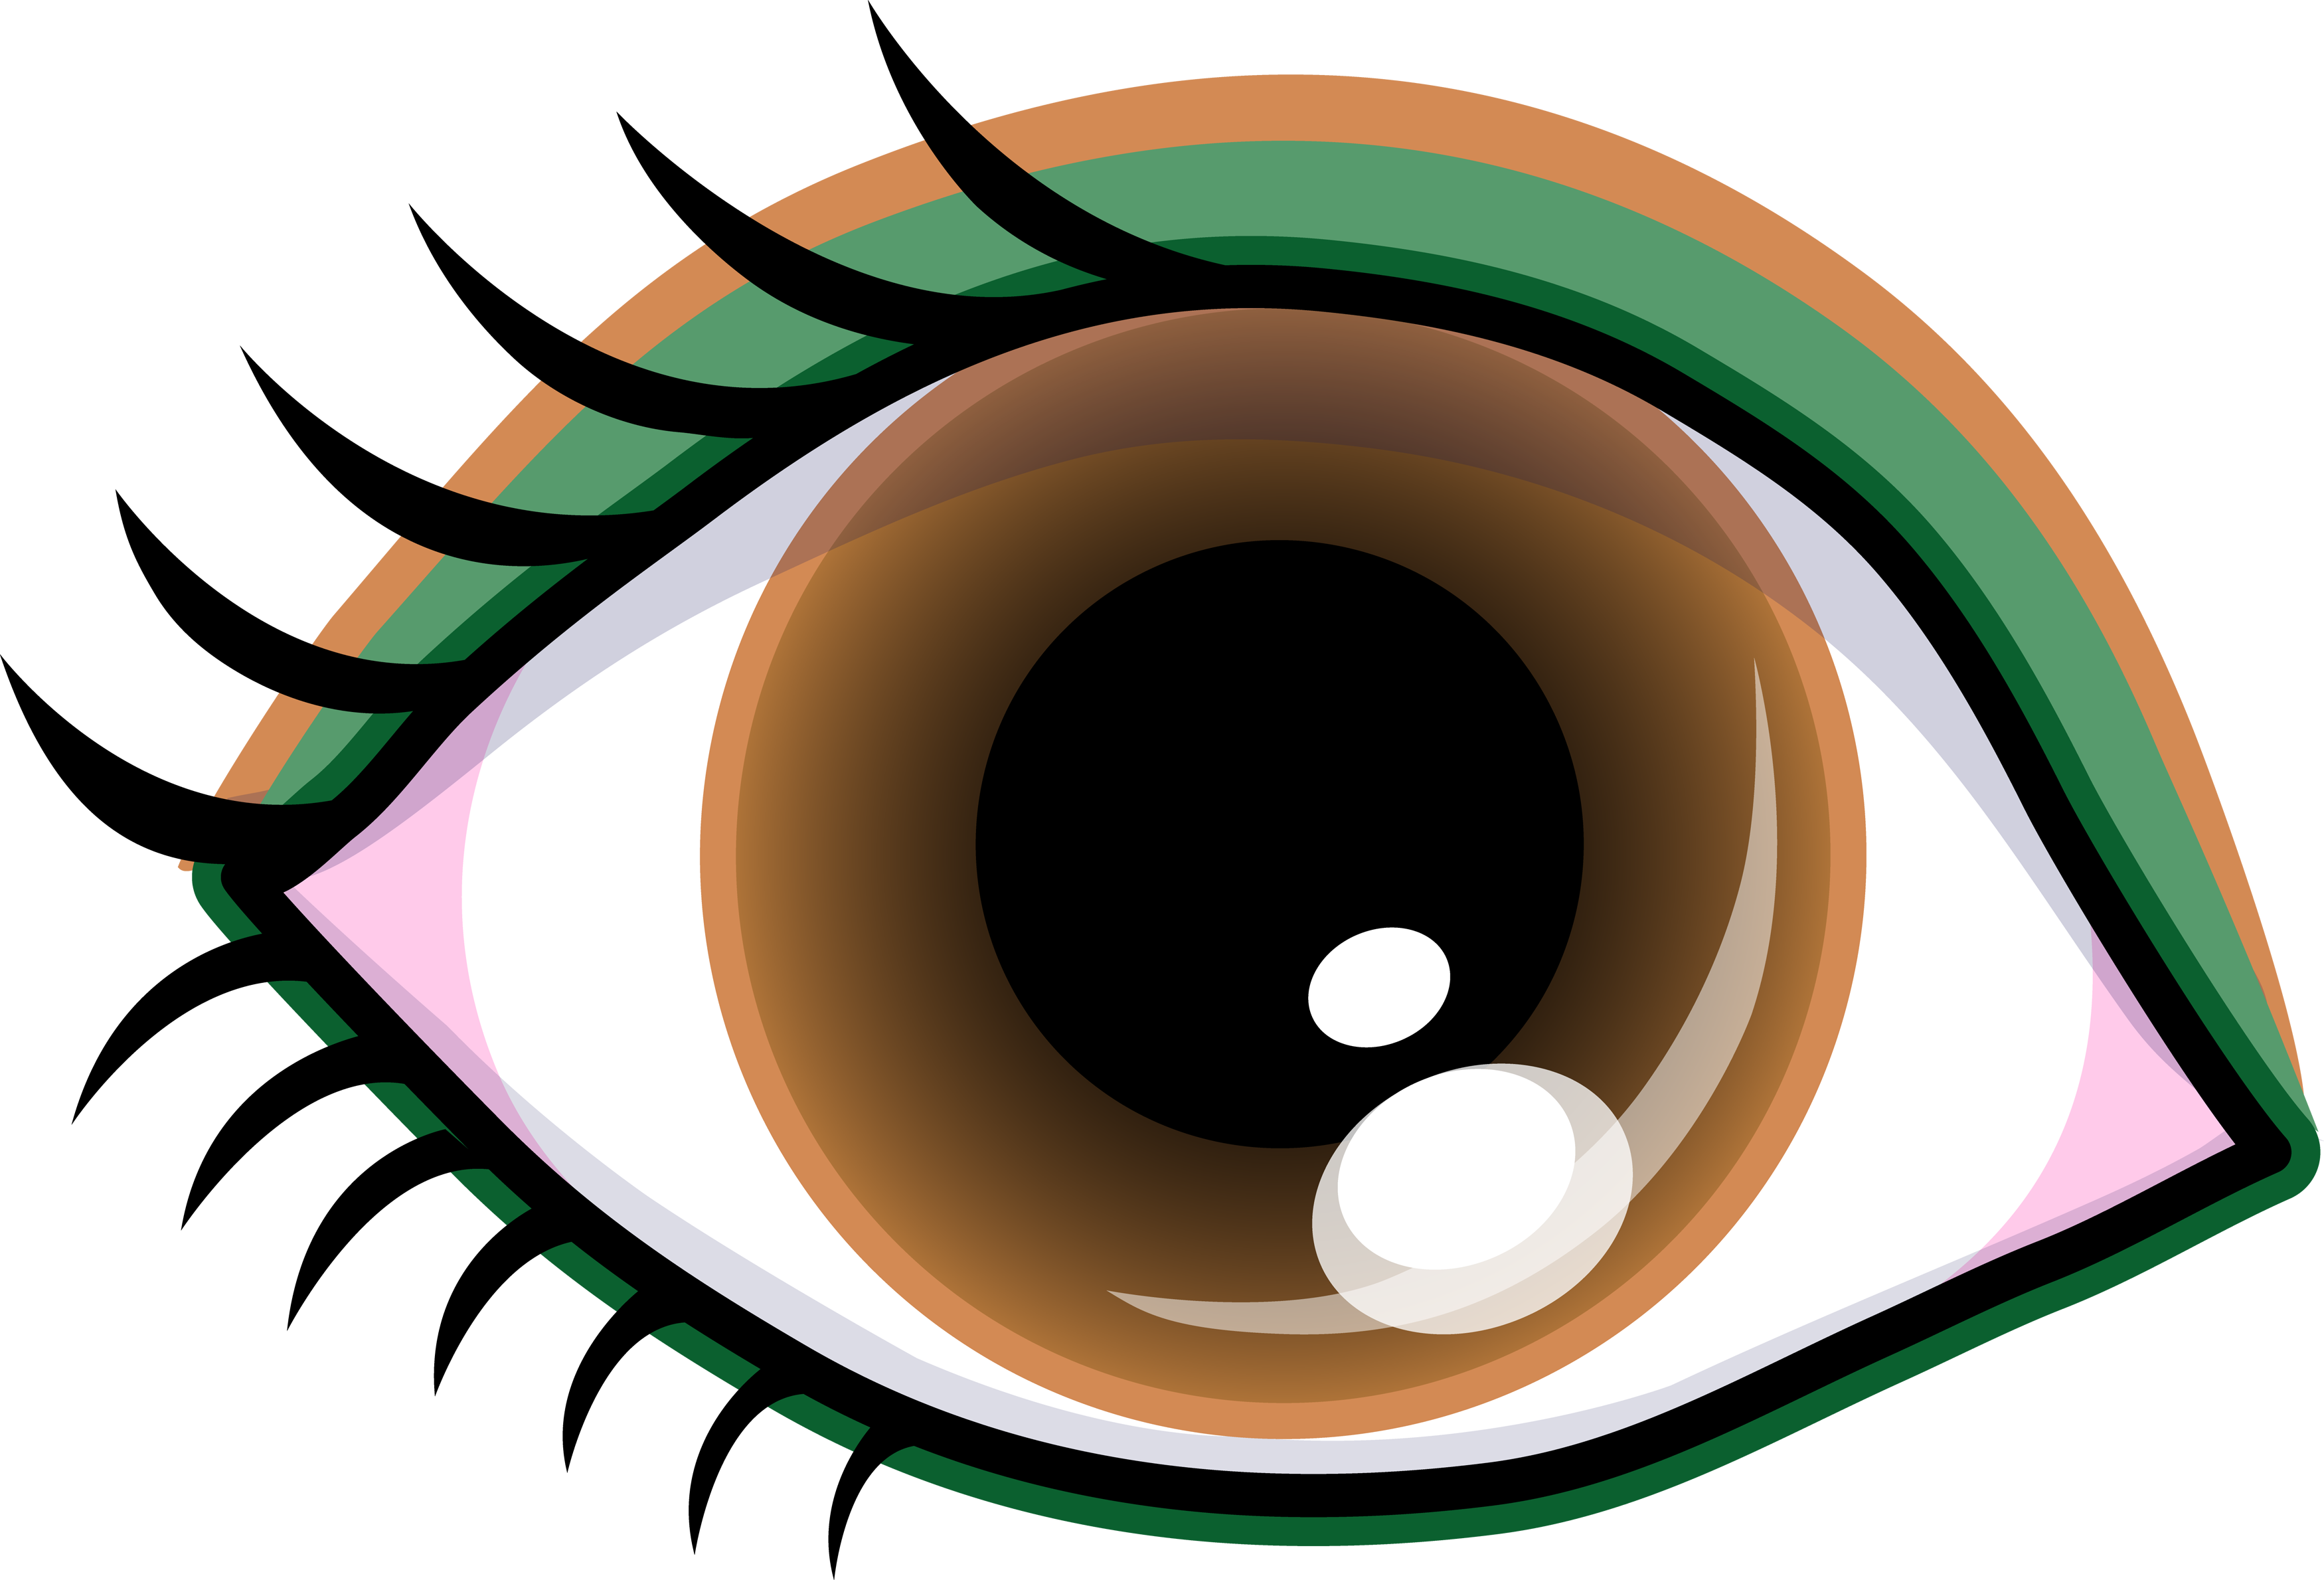 Brown Eyes Clipart - Cliparts.co